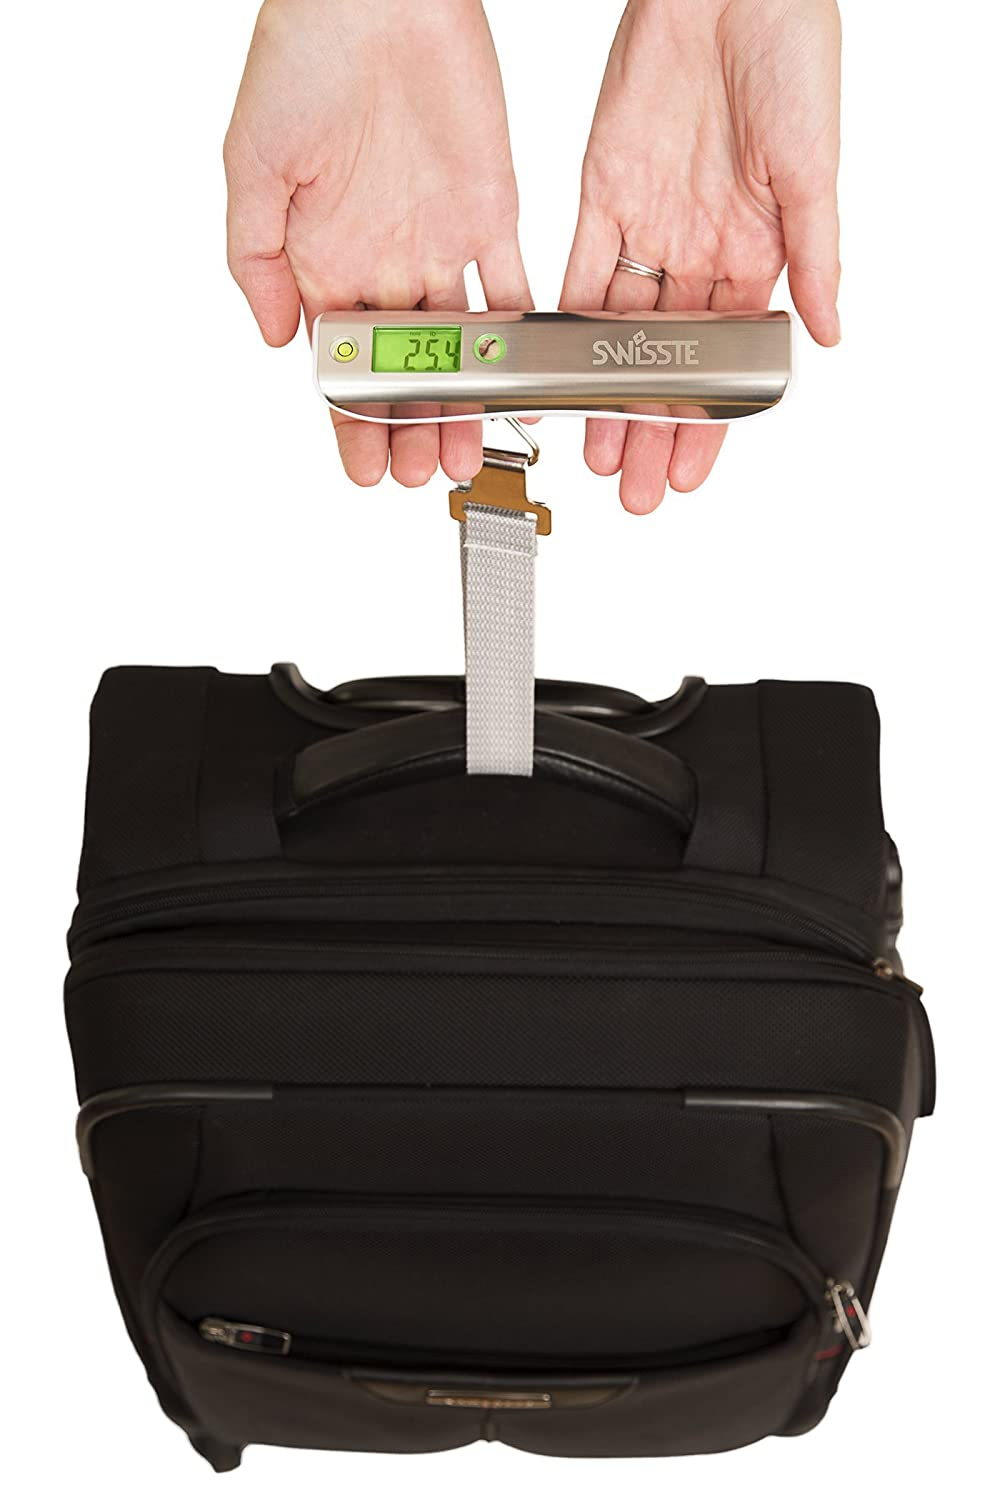 #1 Luggage Scale w/Tape Measure, 110 lbs w/FREE AAA batteries, Best For Travel Swisste